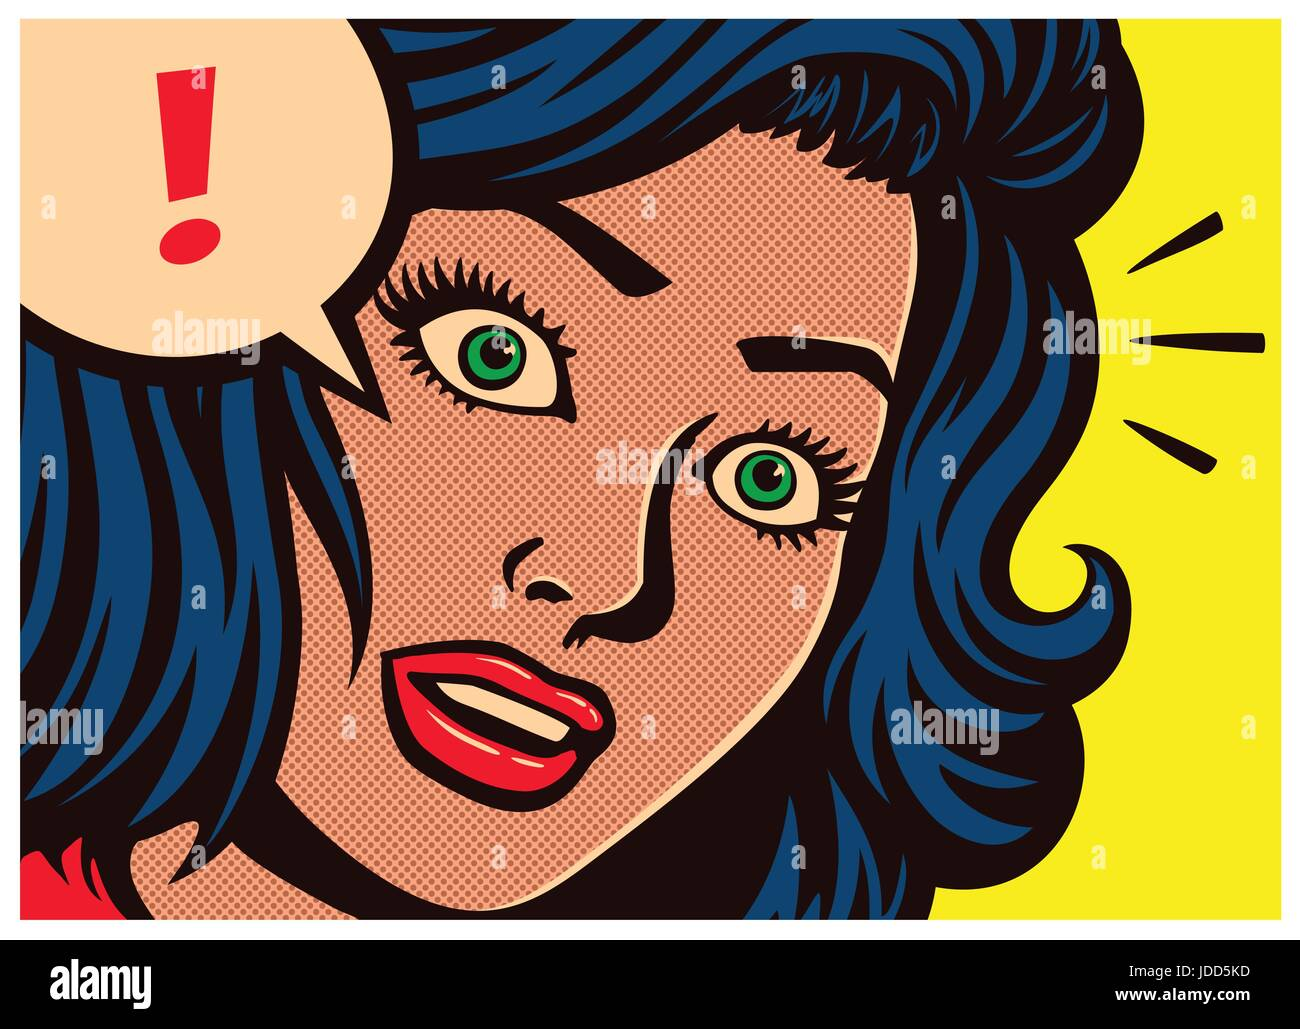 Pop art style comics panel surprised girl with blank expression and speech bubble with exclamation mark poster design - Stock Image